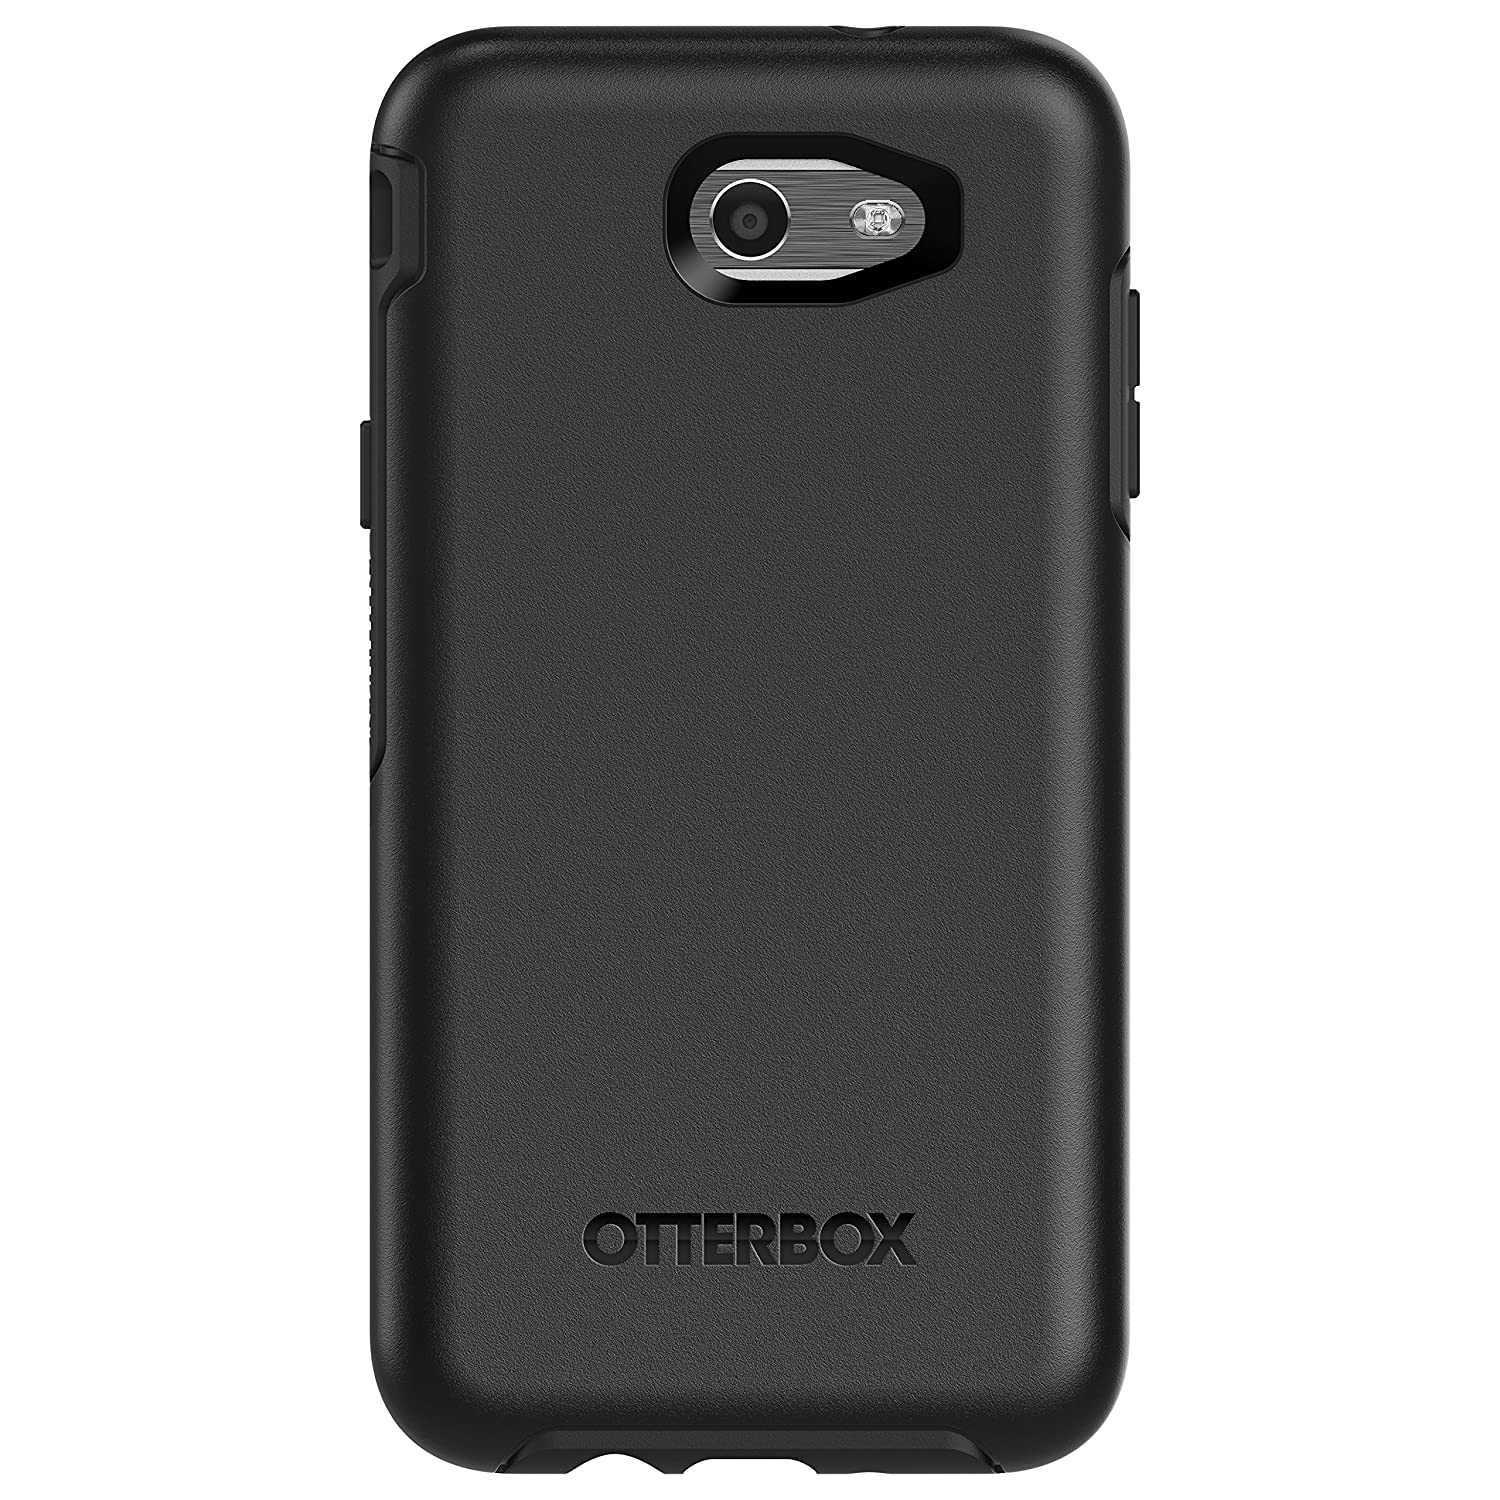 meet dd3c9 94830 OtterBox SYMMETRY SERIES Case for Samsung Galaxy Express Prime 2/Amp Prime  2/Sol 2/J3 Emerge/J3 Prime/J3 Luna Pro - Retail Packaging - BLACK